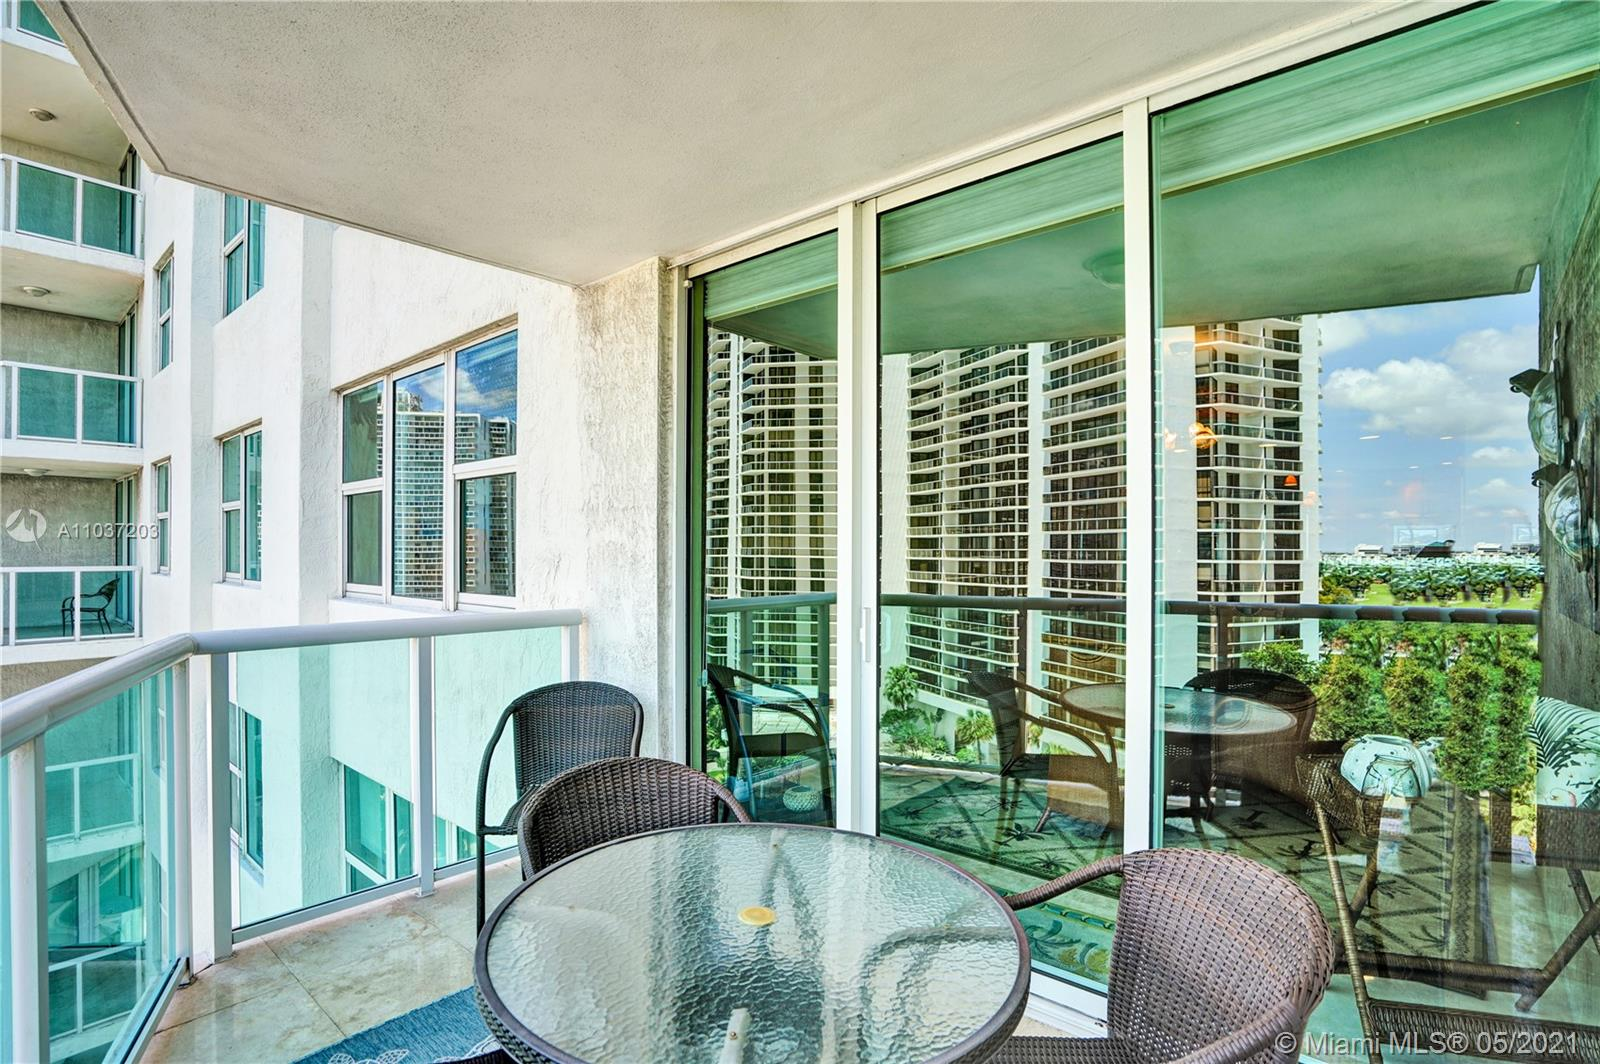 Photo of 20201 Country Club Dr #1006, Aventura, Florida, 33180 - Calm, relaxing water views.